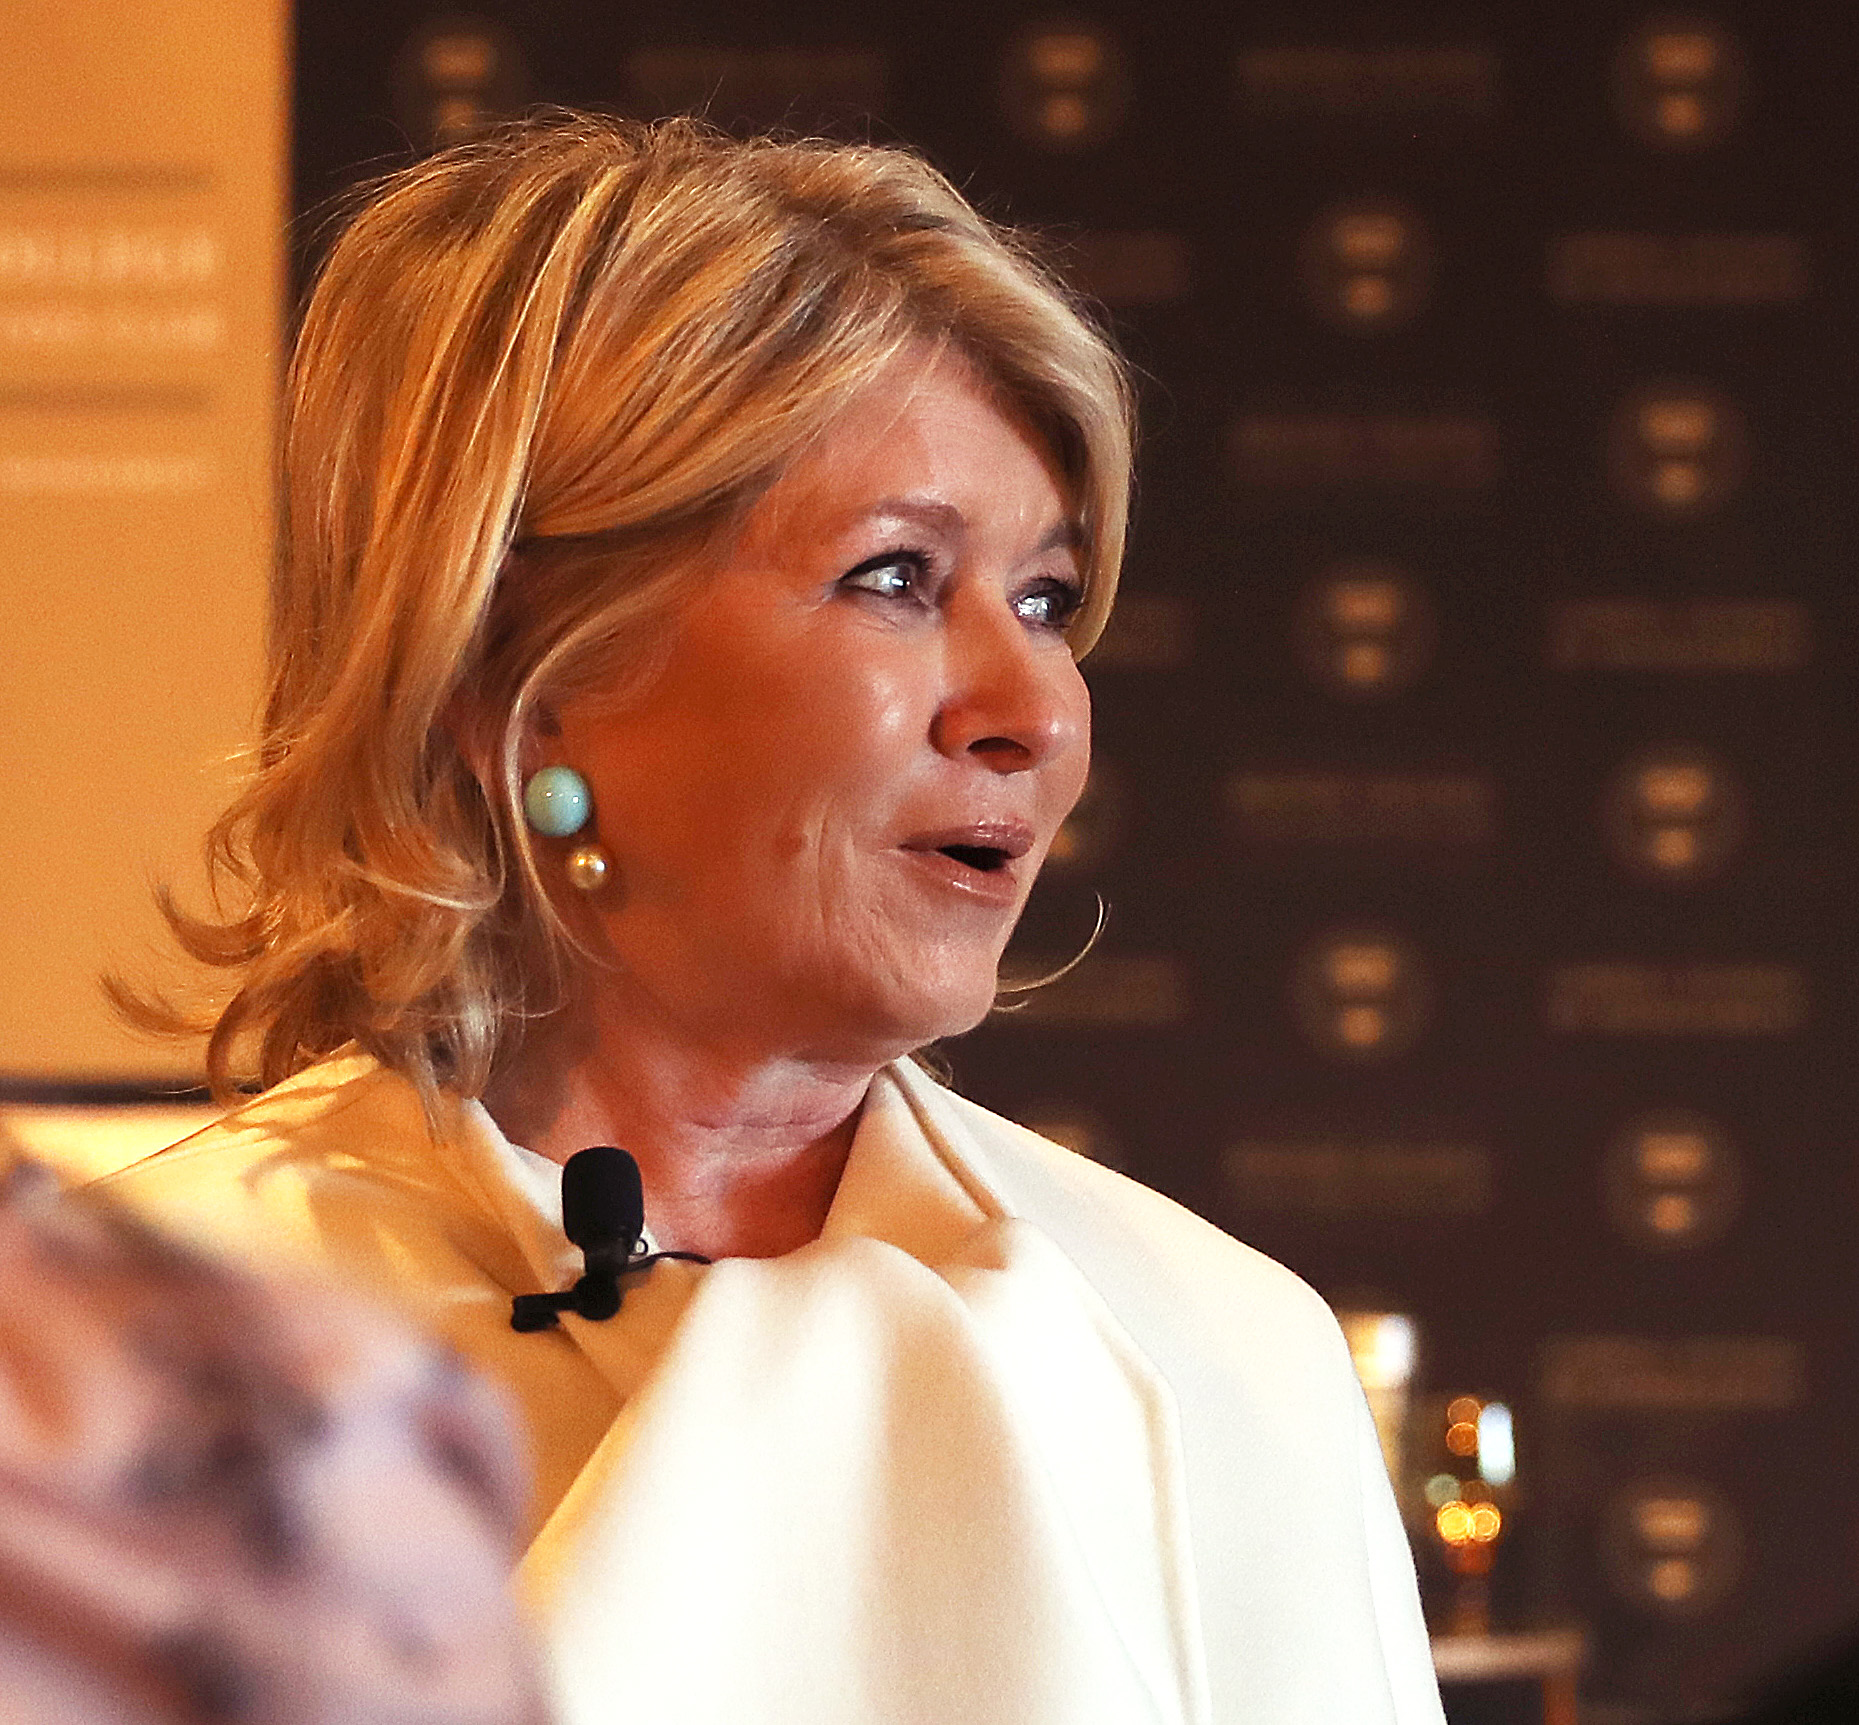 Martha Stewart offers biz lessons to Boston - The Boston Globe